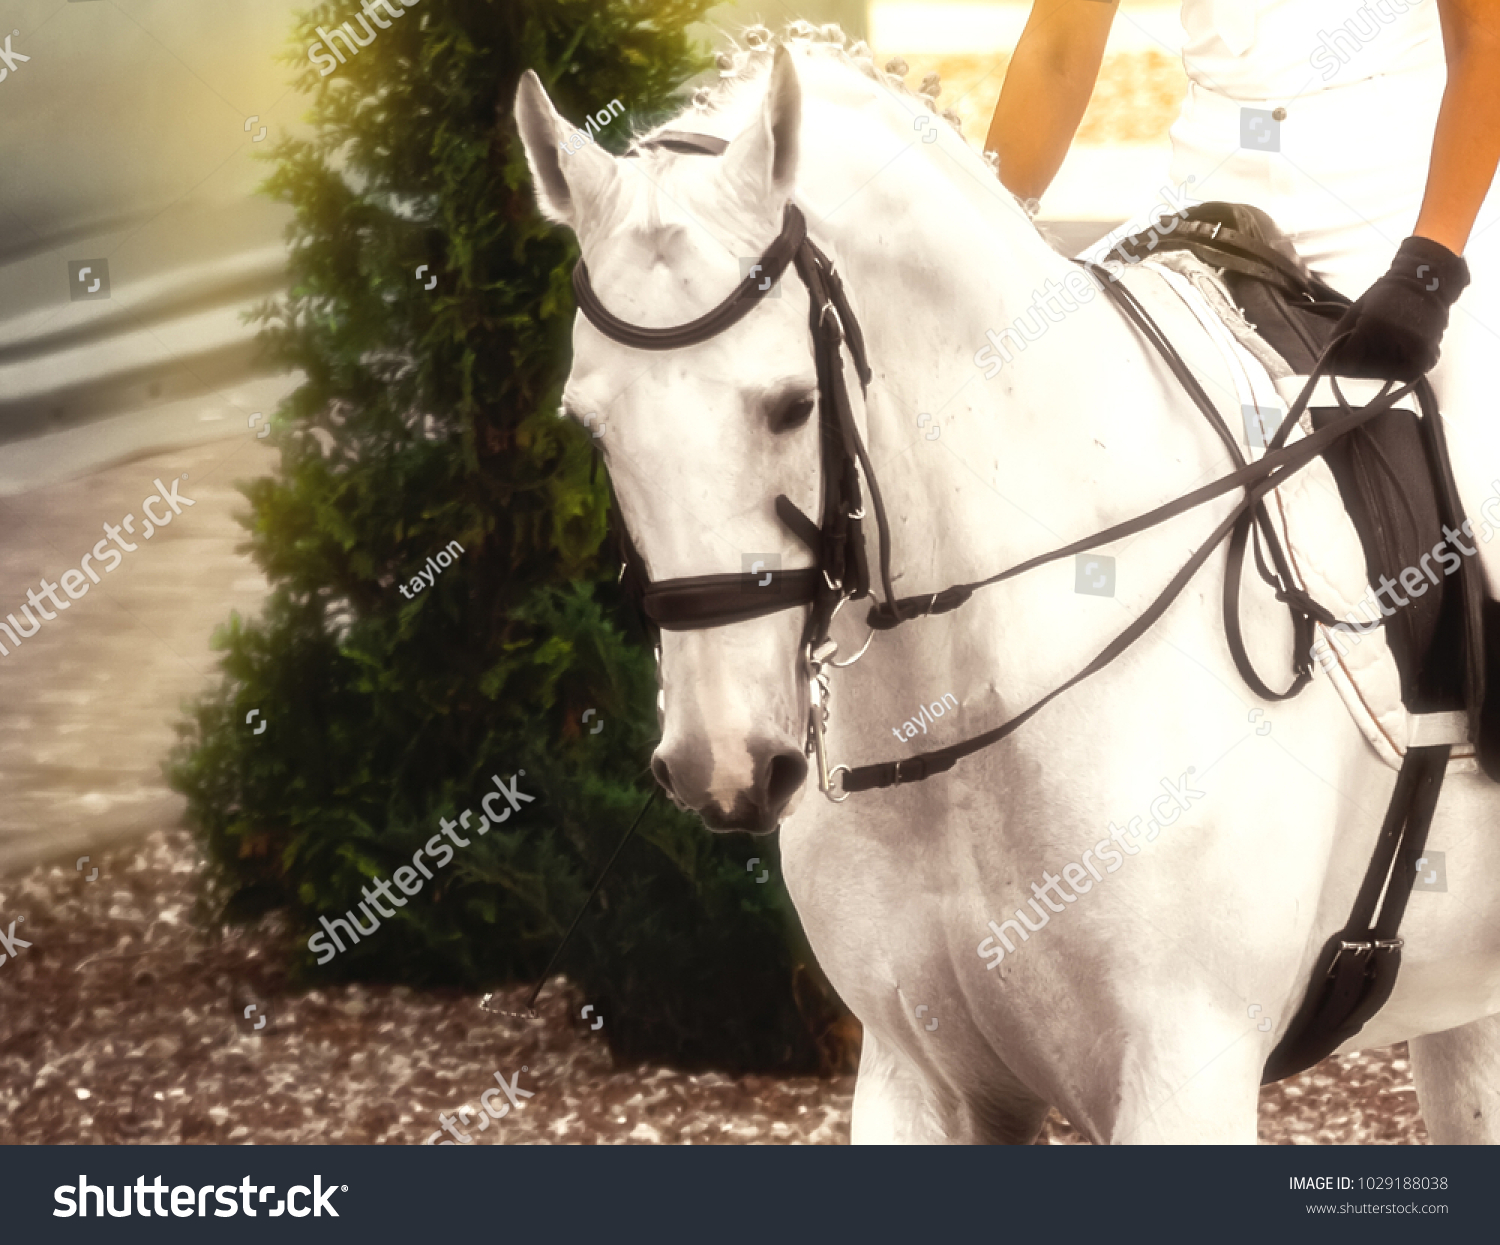 White Female Horse Harness - WIRE Center •